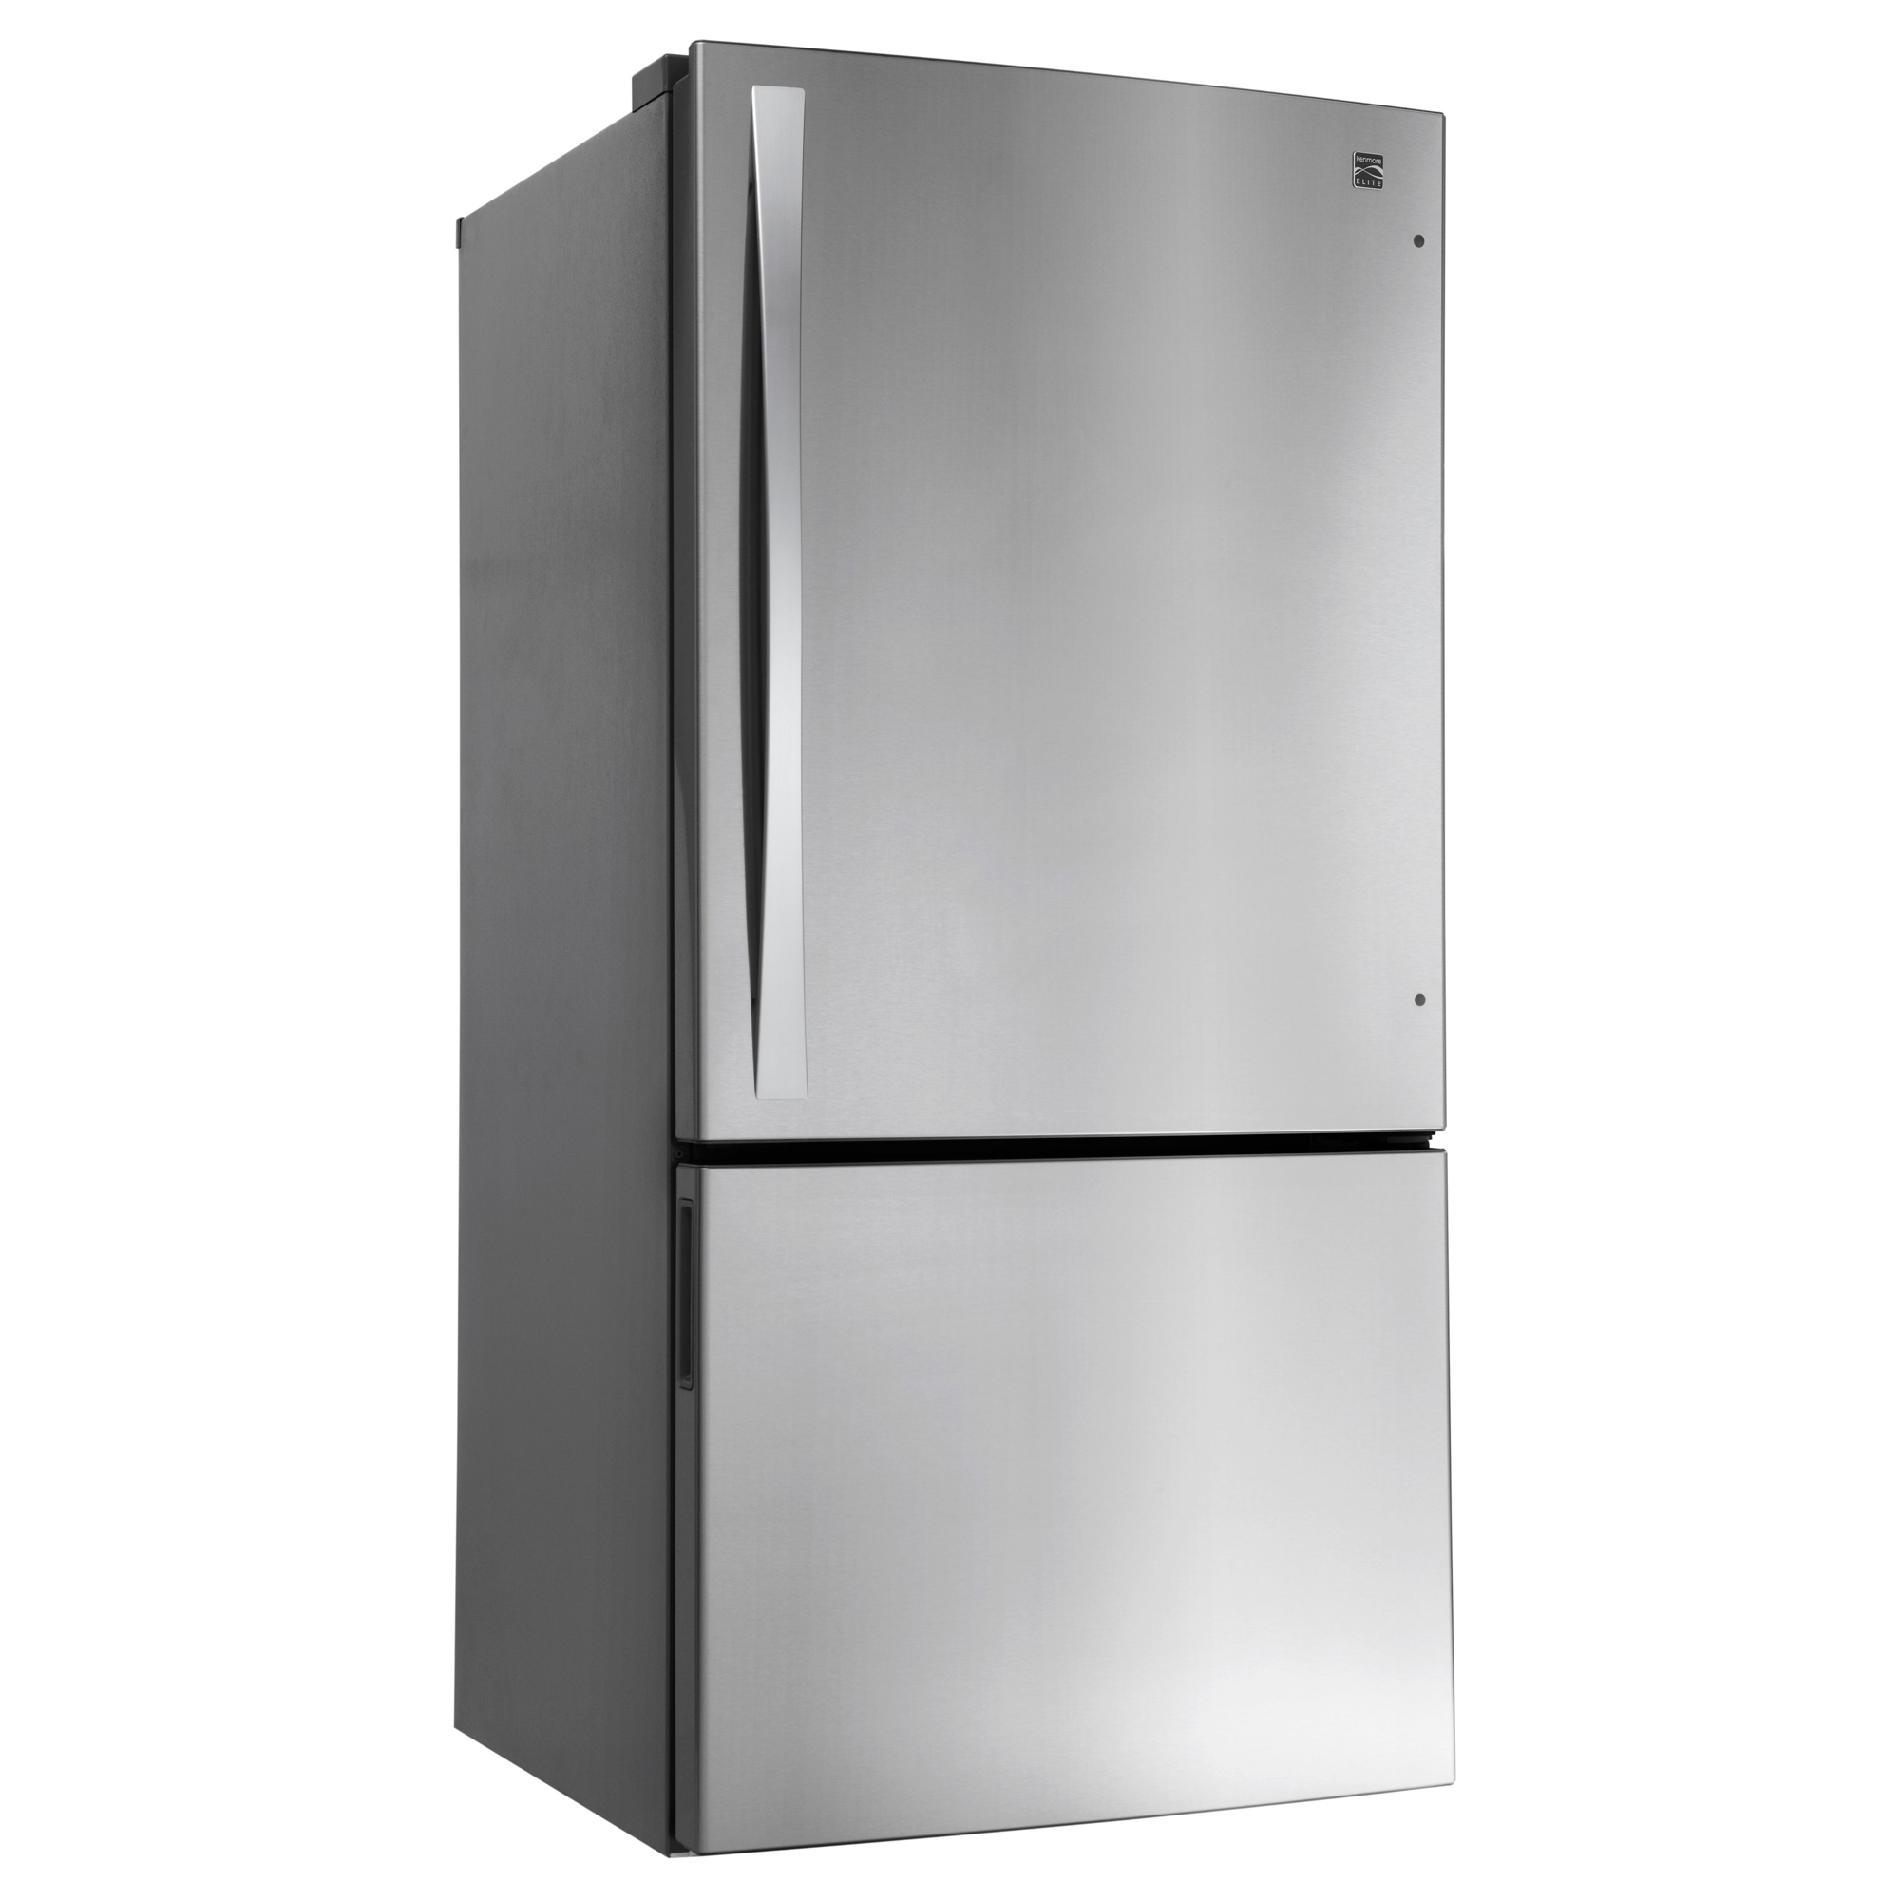 Kenmore Elite 24 cu. ft. Bottom-Freezer Refrigerator - Stainless Steel